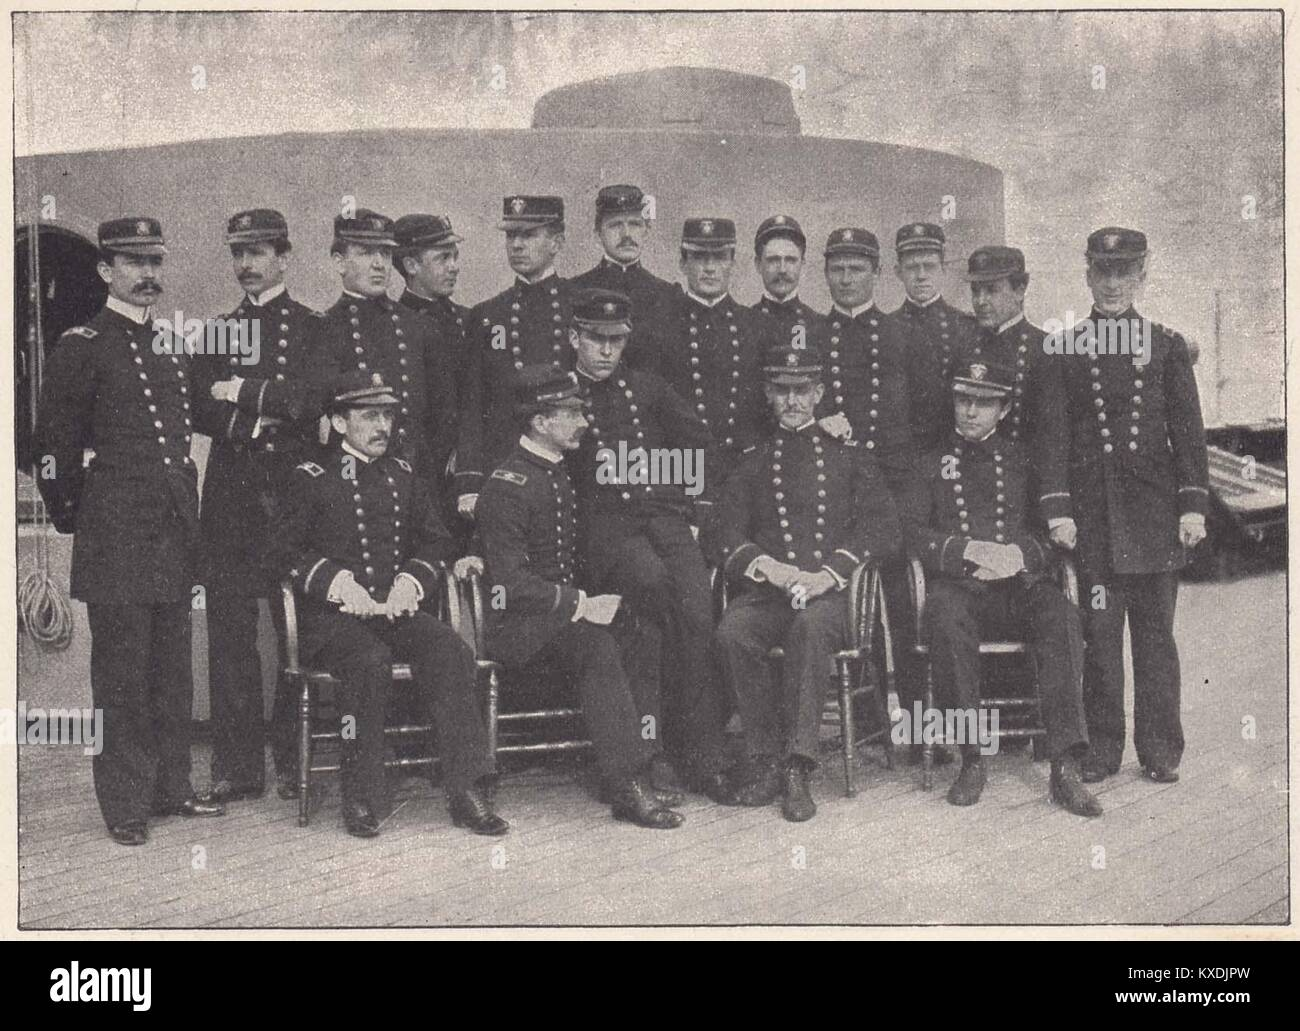 Officers of the Flagship New York - Captain F.E. Chadwick is chief of these men, who are proud of their magnificent - Stock Image